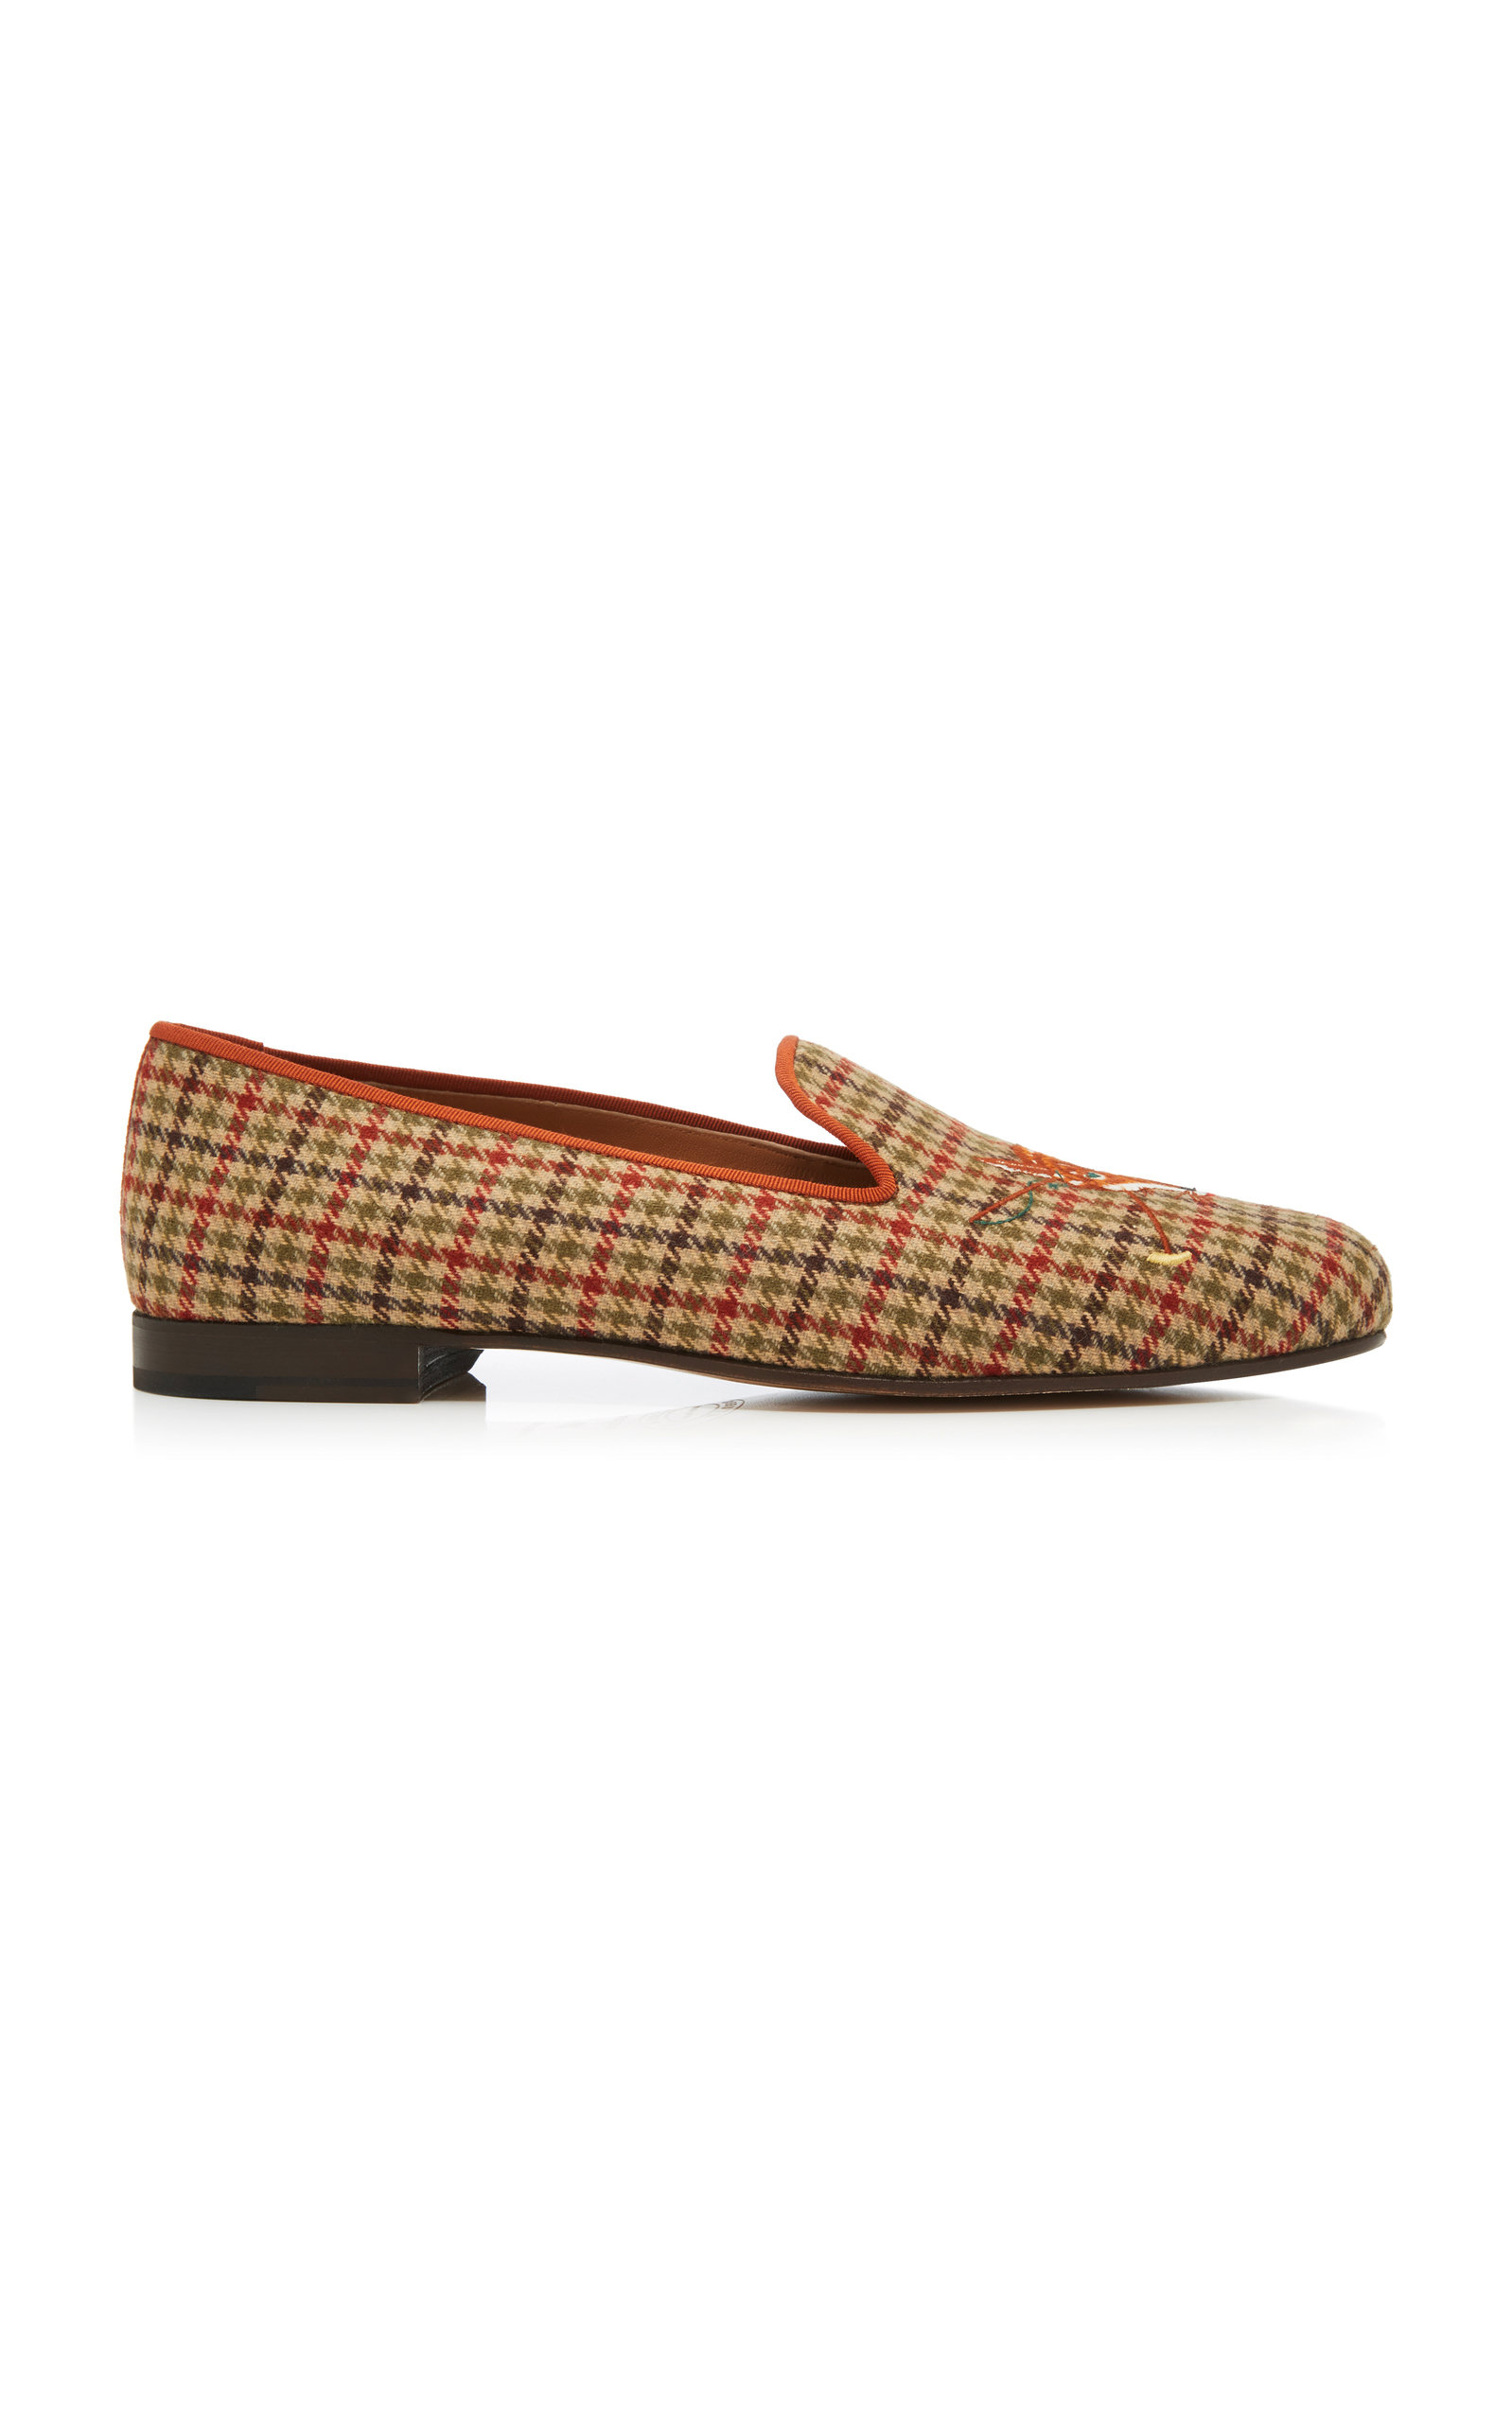 STUBBS & WOOTTON M'O Exclusive Fox Tweed Slippers in Plaid